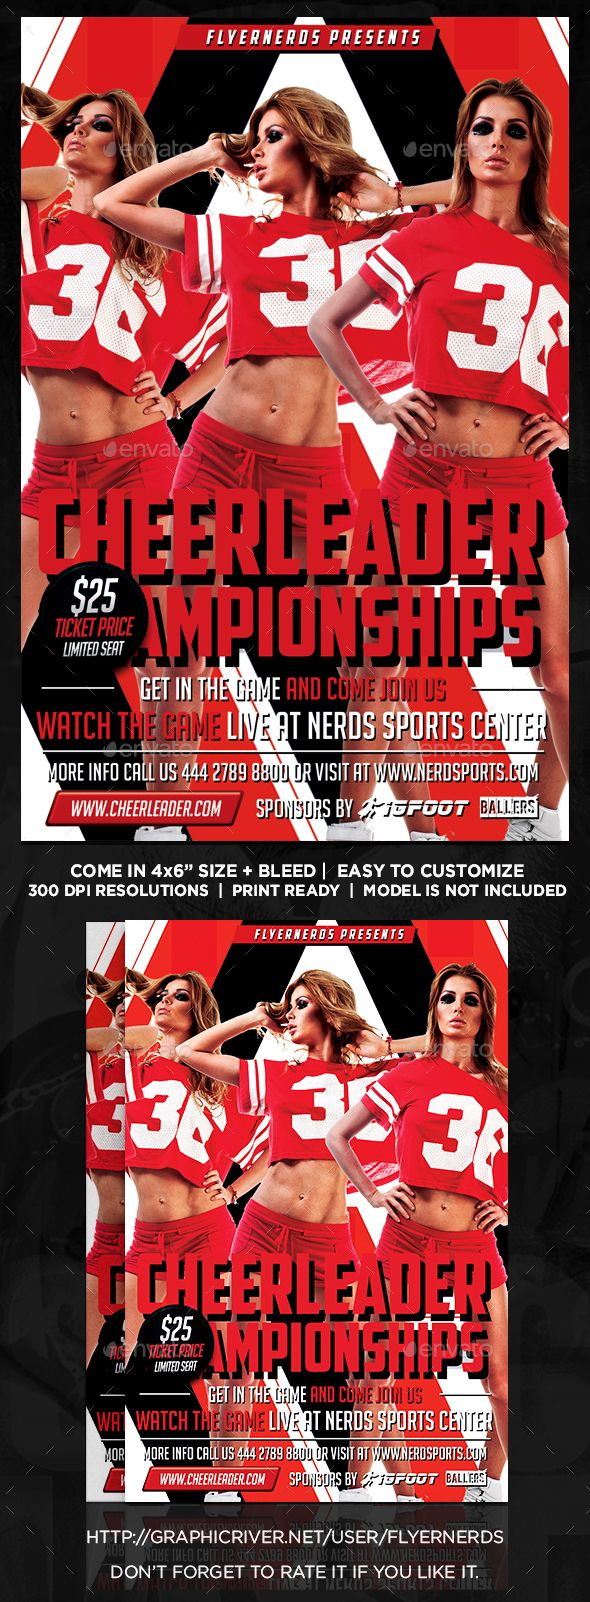 Cheerleader Competions Sports Flyer  Event Flyers Flyer Template